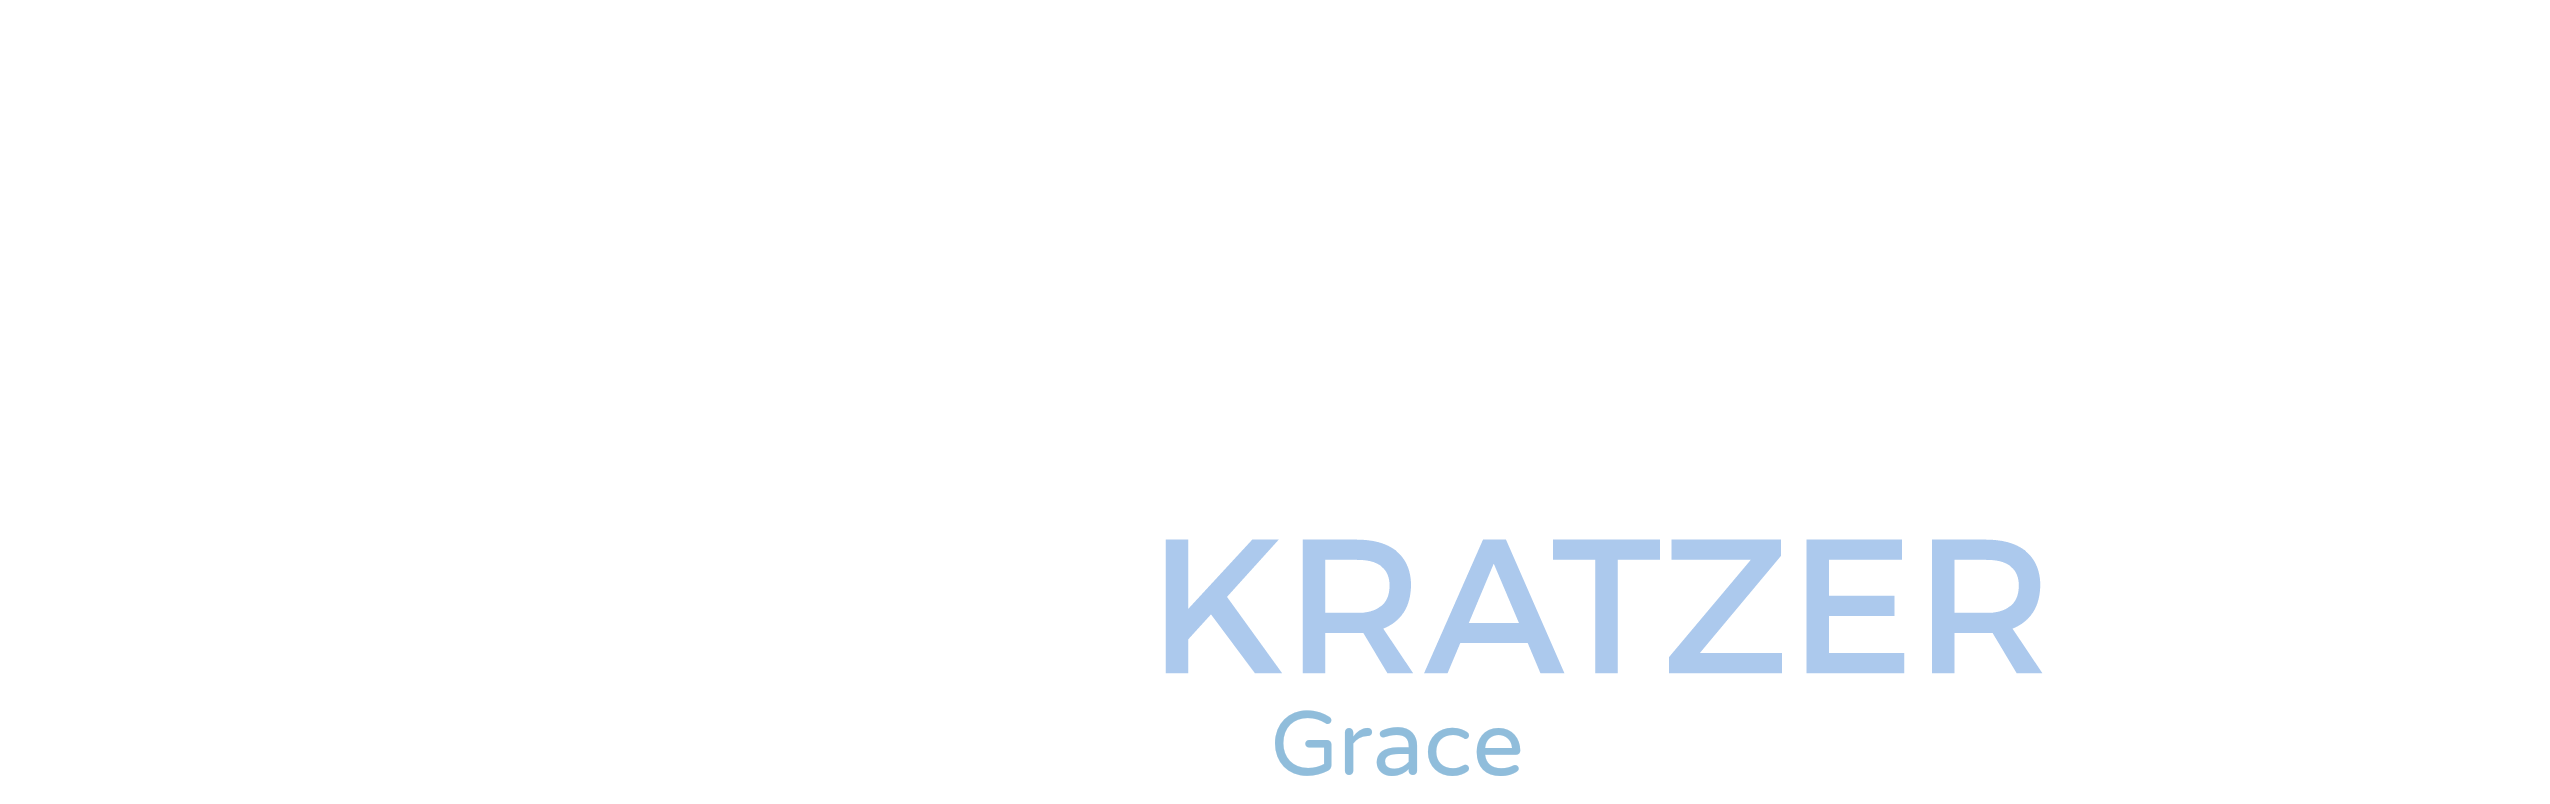 Chris Kratzer